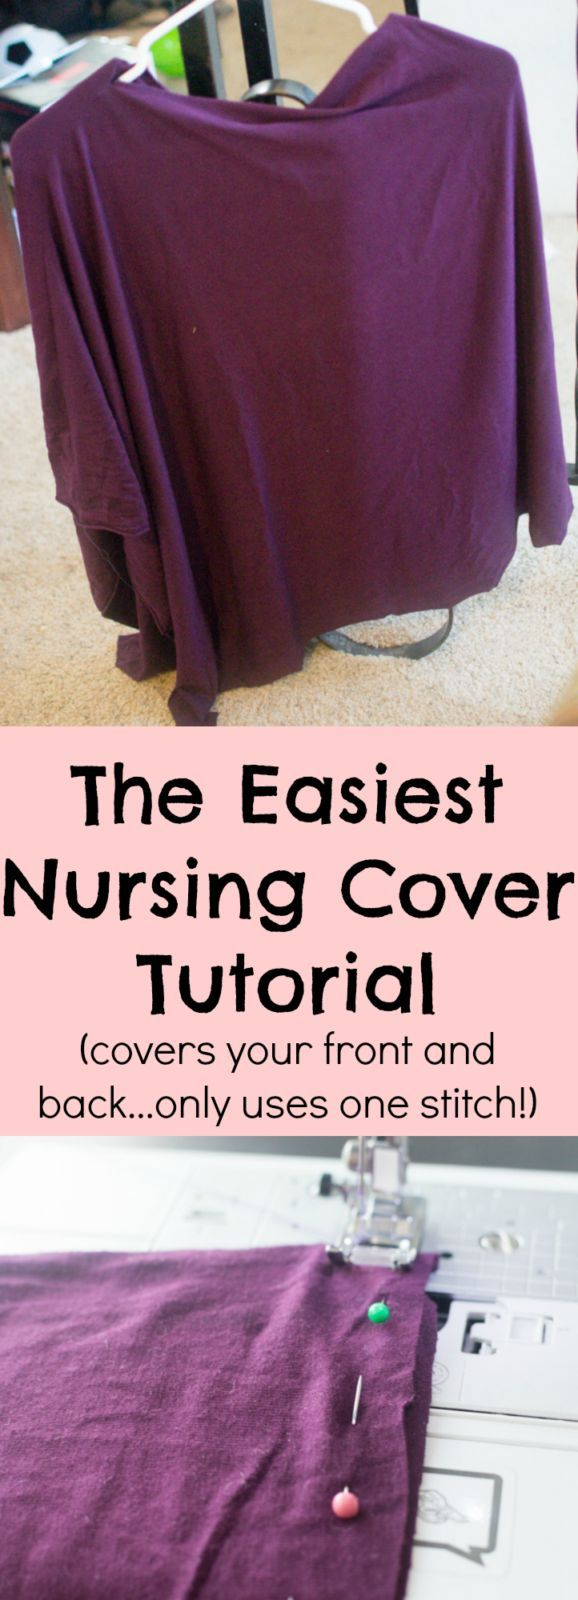 Best 25 Nursing cover poncho ideas on Pinterest  Nursing poncho DIY knitting clothes and DIY